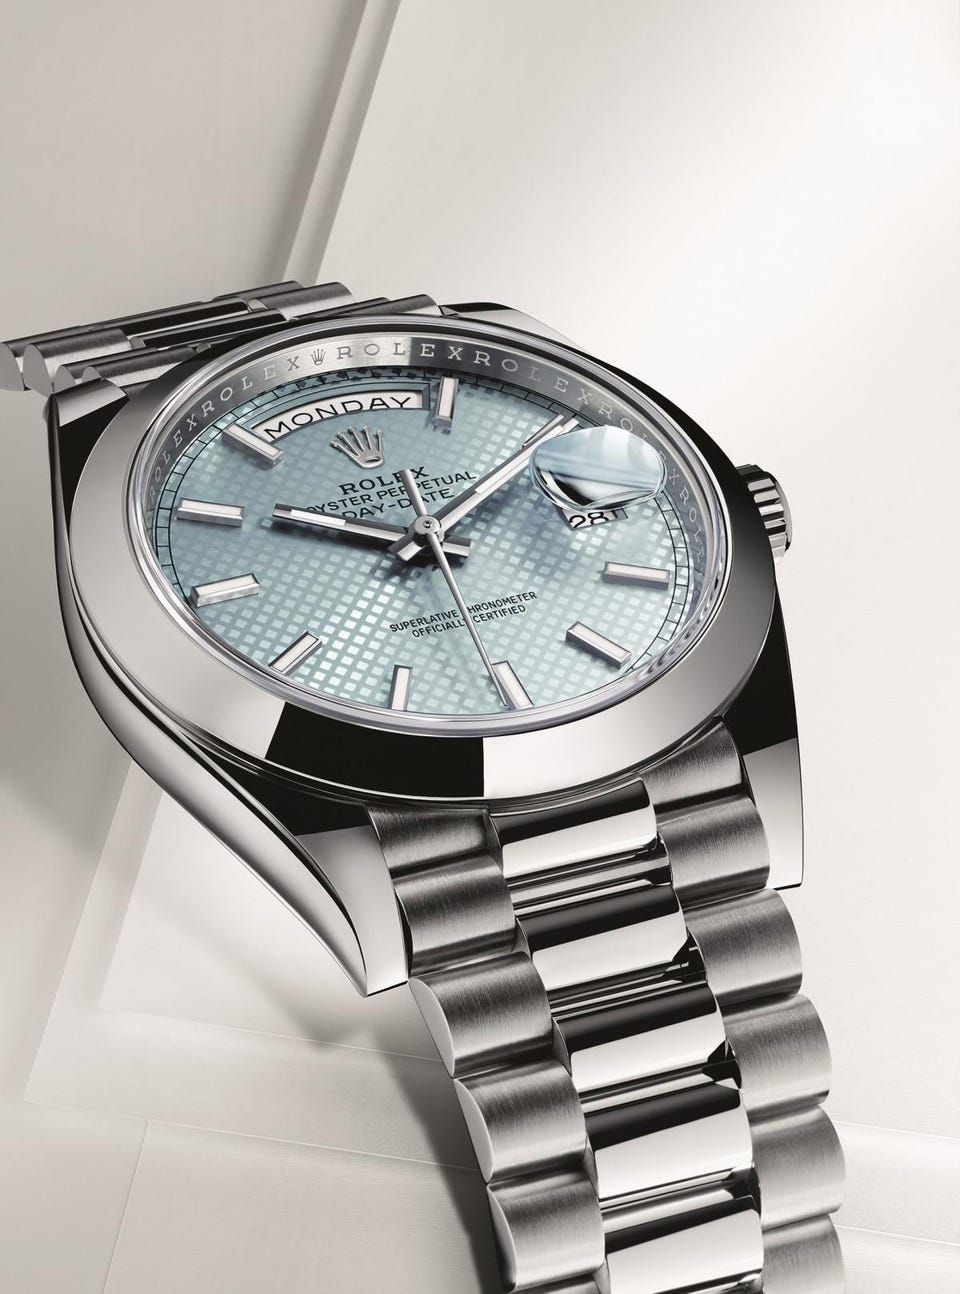 Rolex Daydate Known As The Presidents Watch The Iconic Rolex Oyster Perpetual